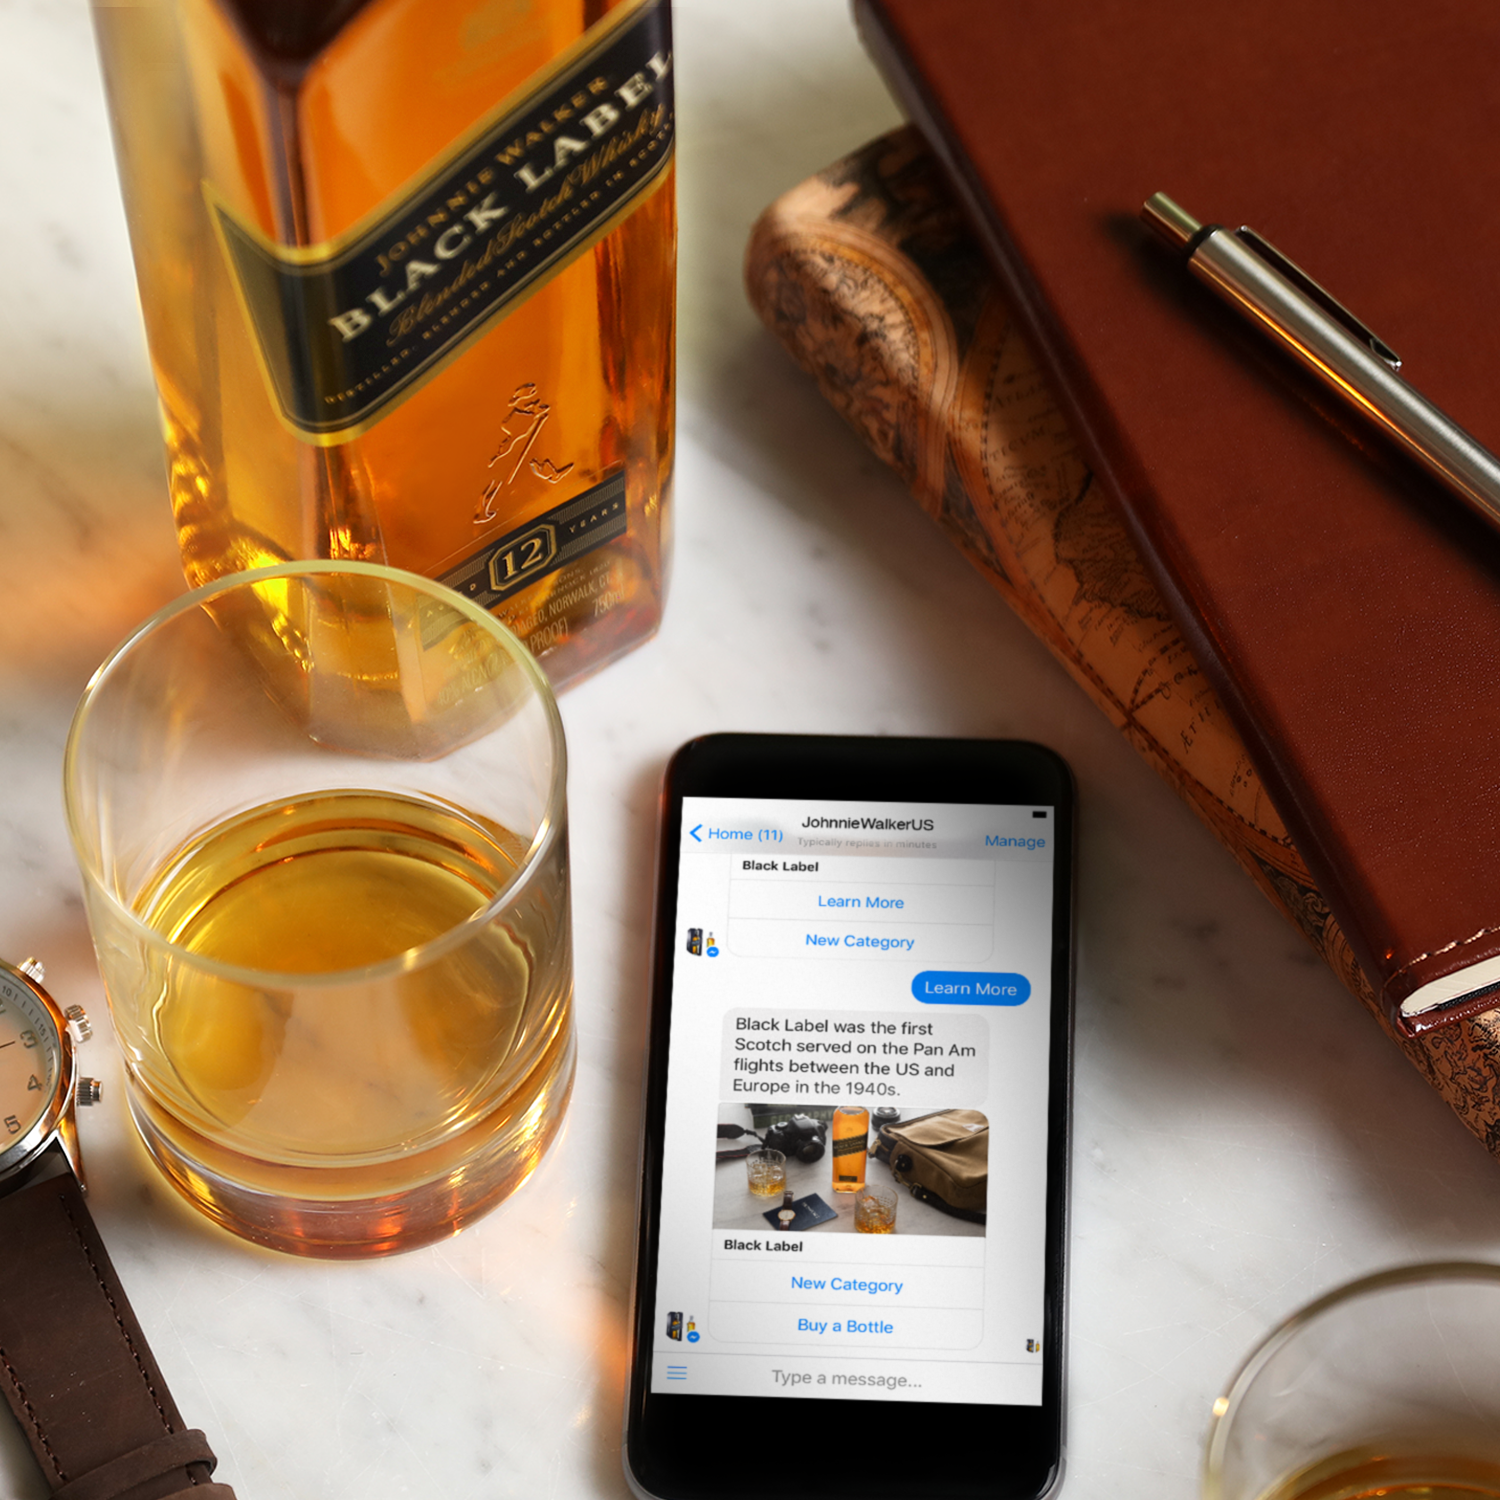 johnnie-walker-launches-a-bot-for-messenger-bringing-whisky-tasting-and-education-to-your-fingertips